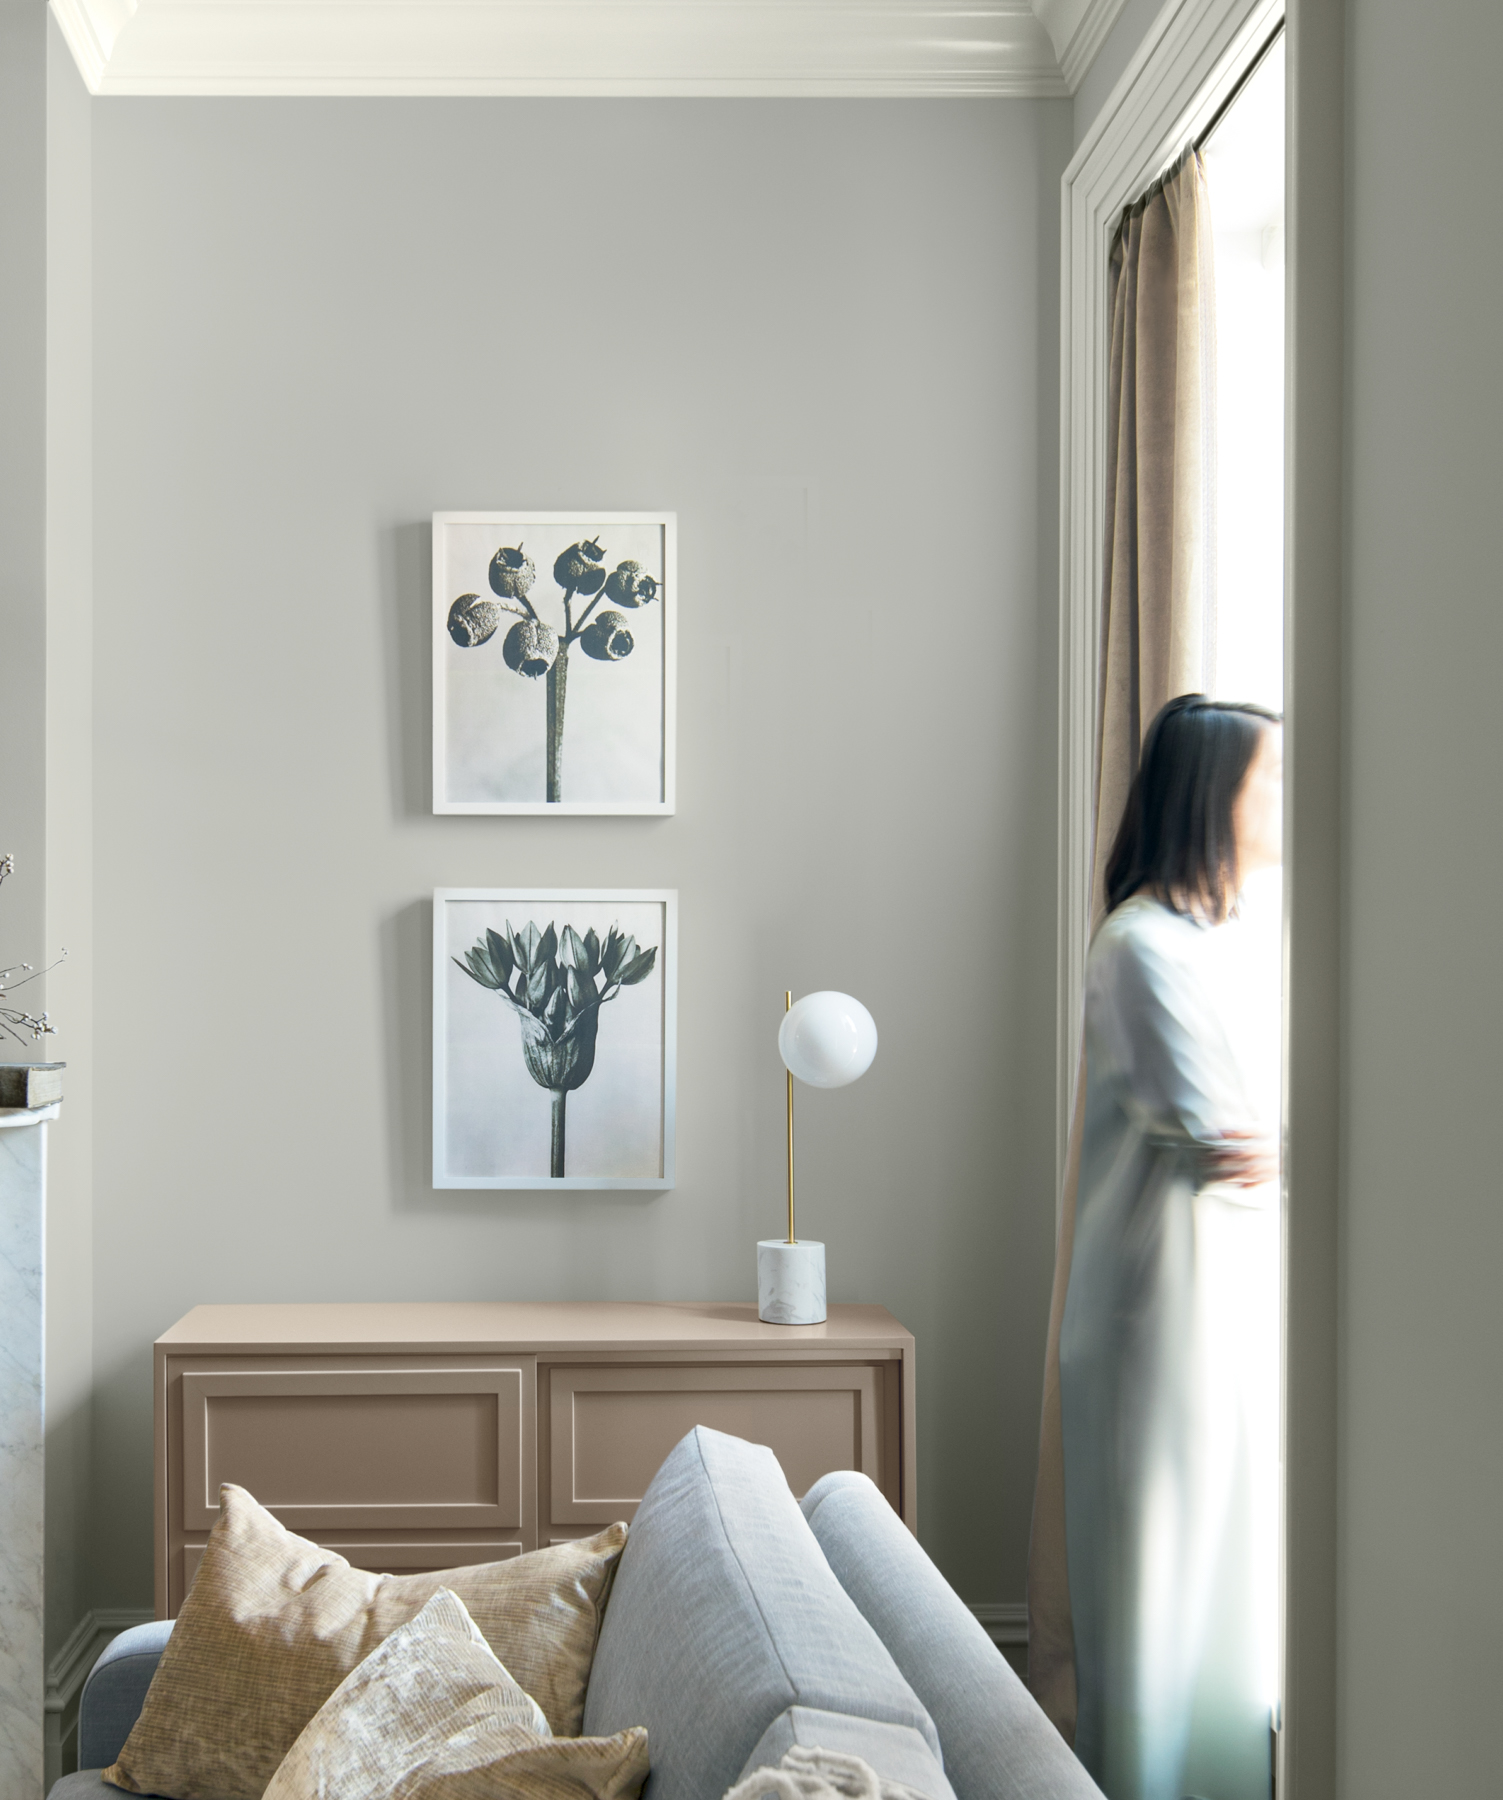 Benjamin moore 39 s 2019 color of the year is 39 metropolitan - Preview exterior house paint colors ...